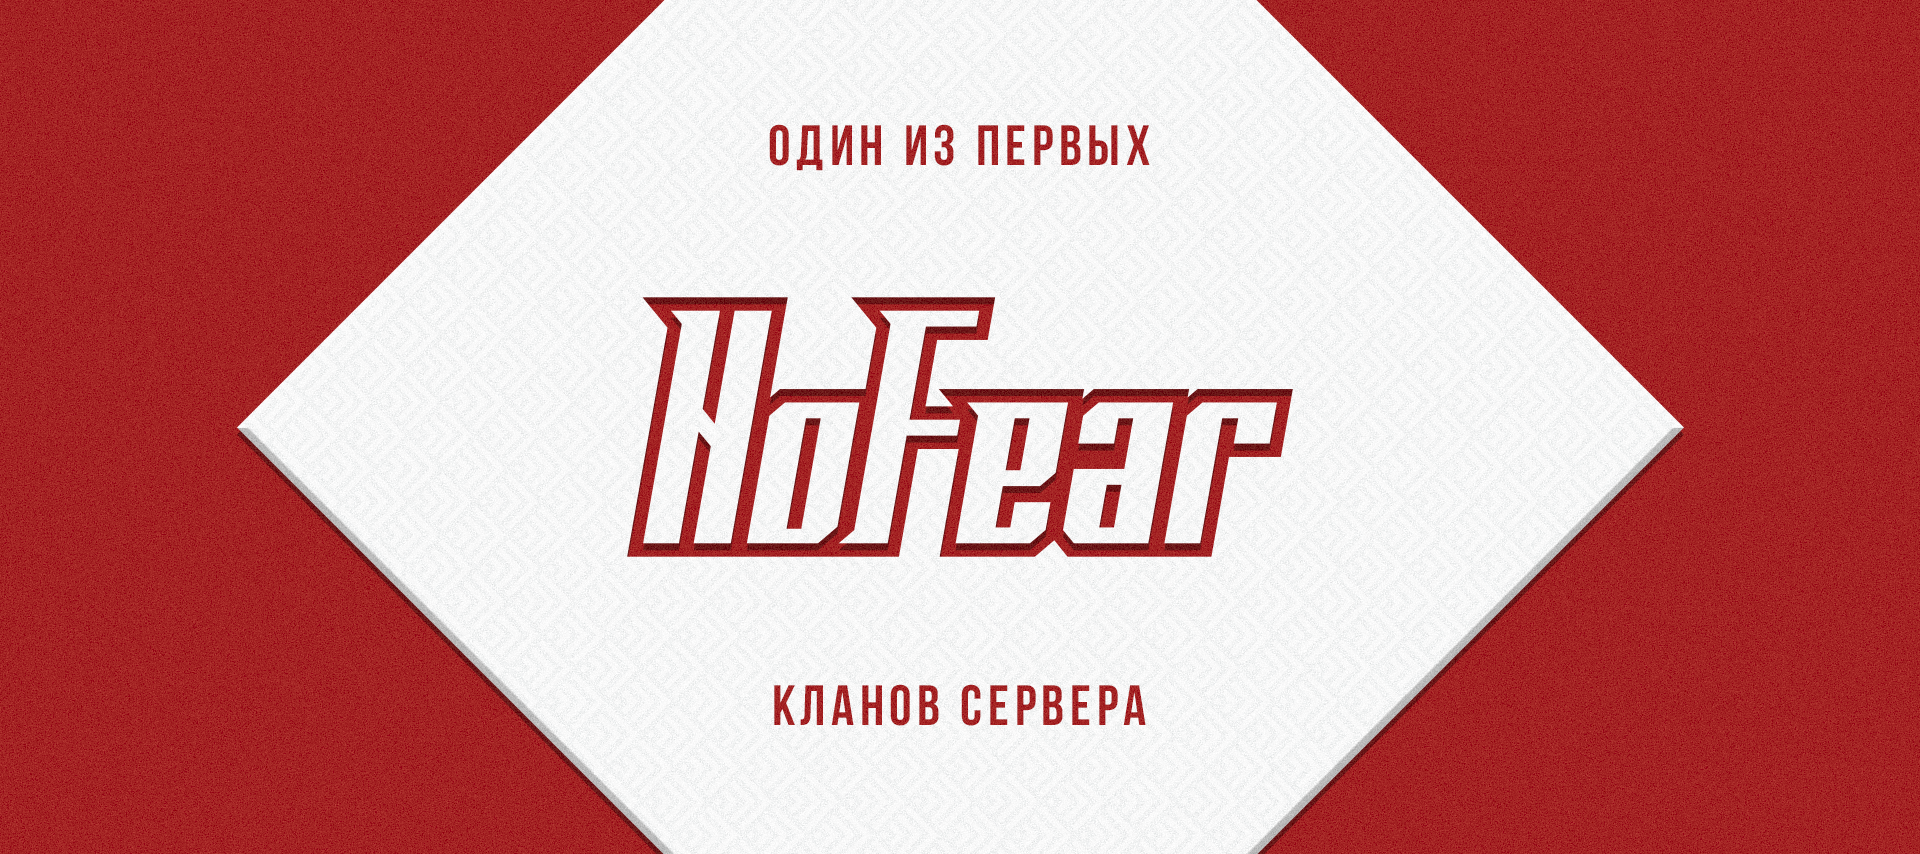 http://images.vfl.ru/ii/1593190310/999338fc/30916777.png